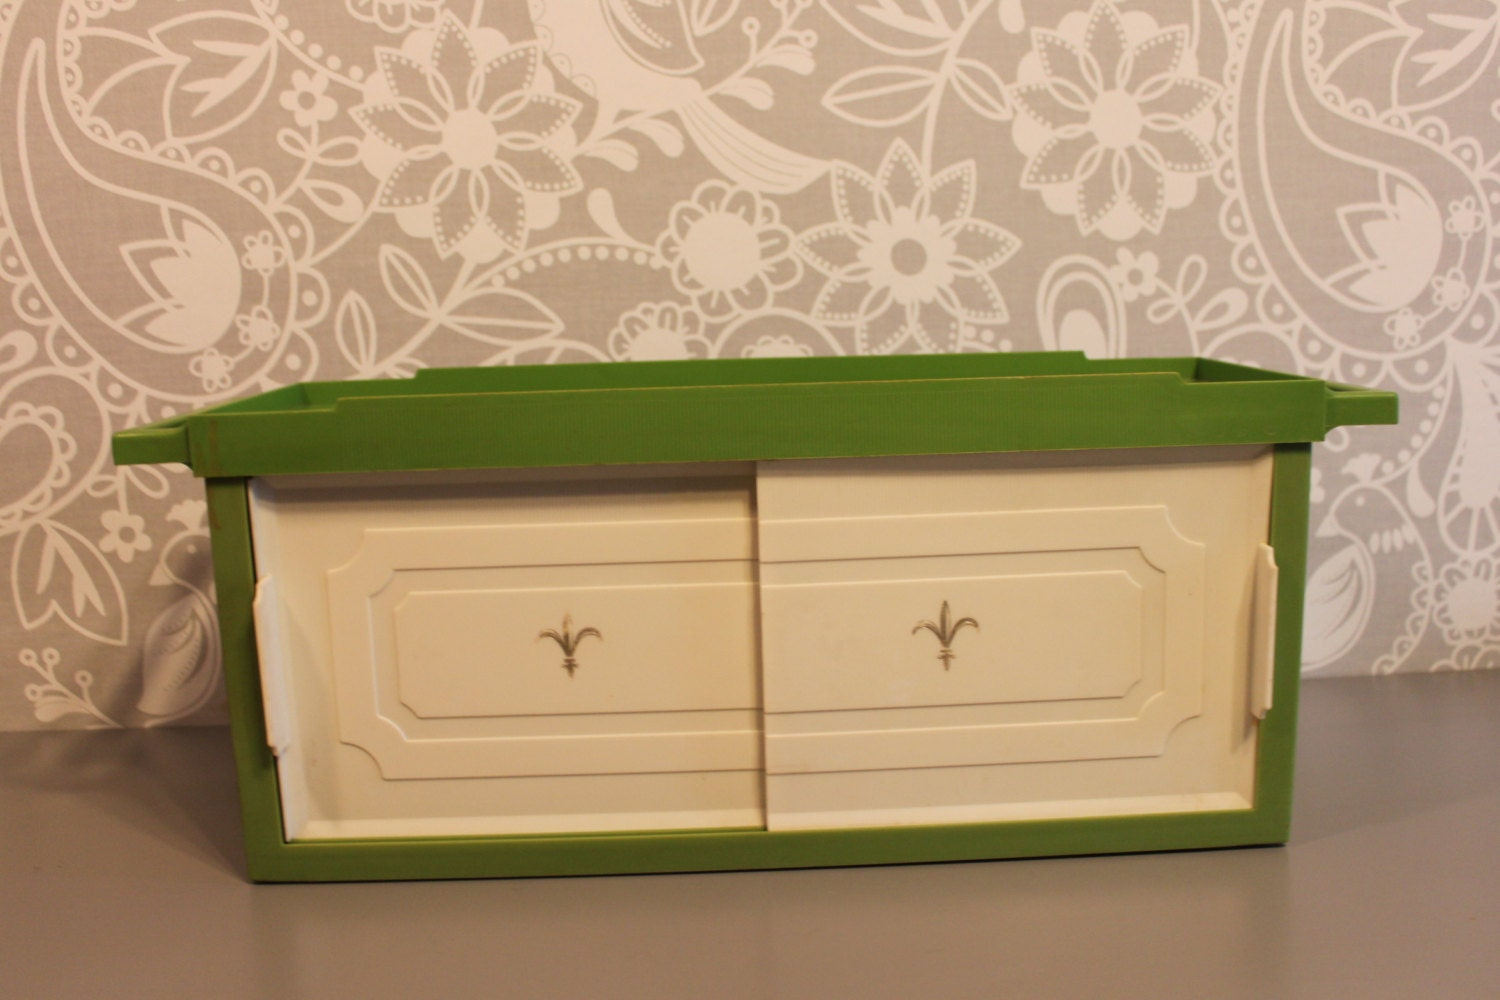 Vintage Green Plastic Wall Shelf With Ivory And Golden Fleur